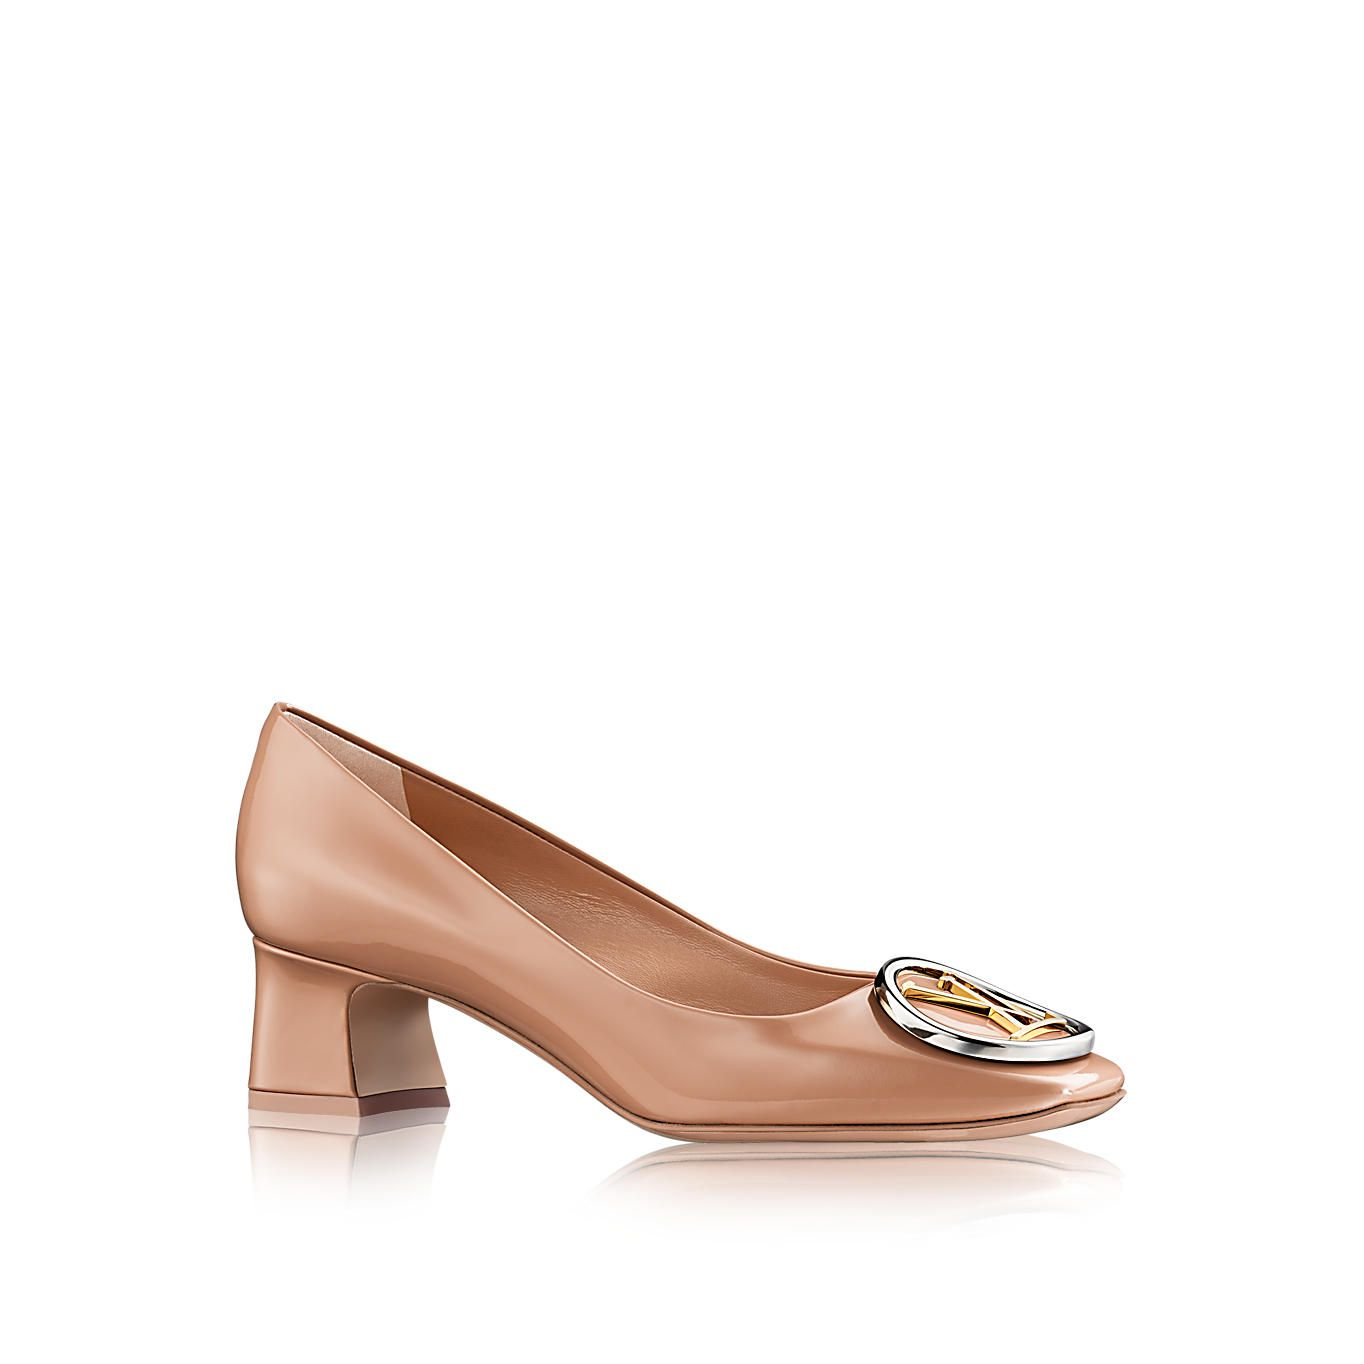 c085f0dee2a1 Madeleine Pump in Women s Shoes collections by Louis Vuitton ...